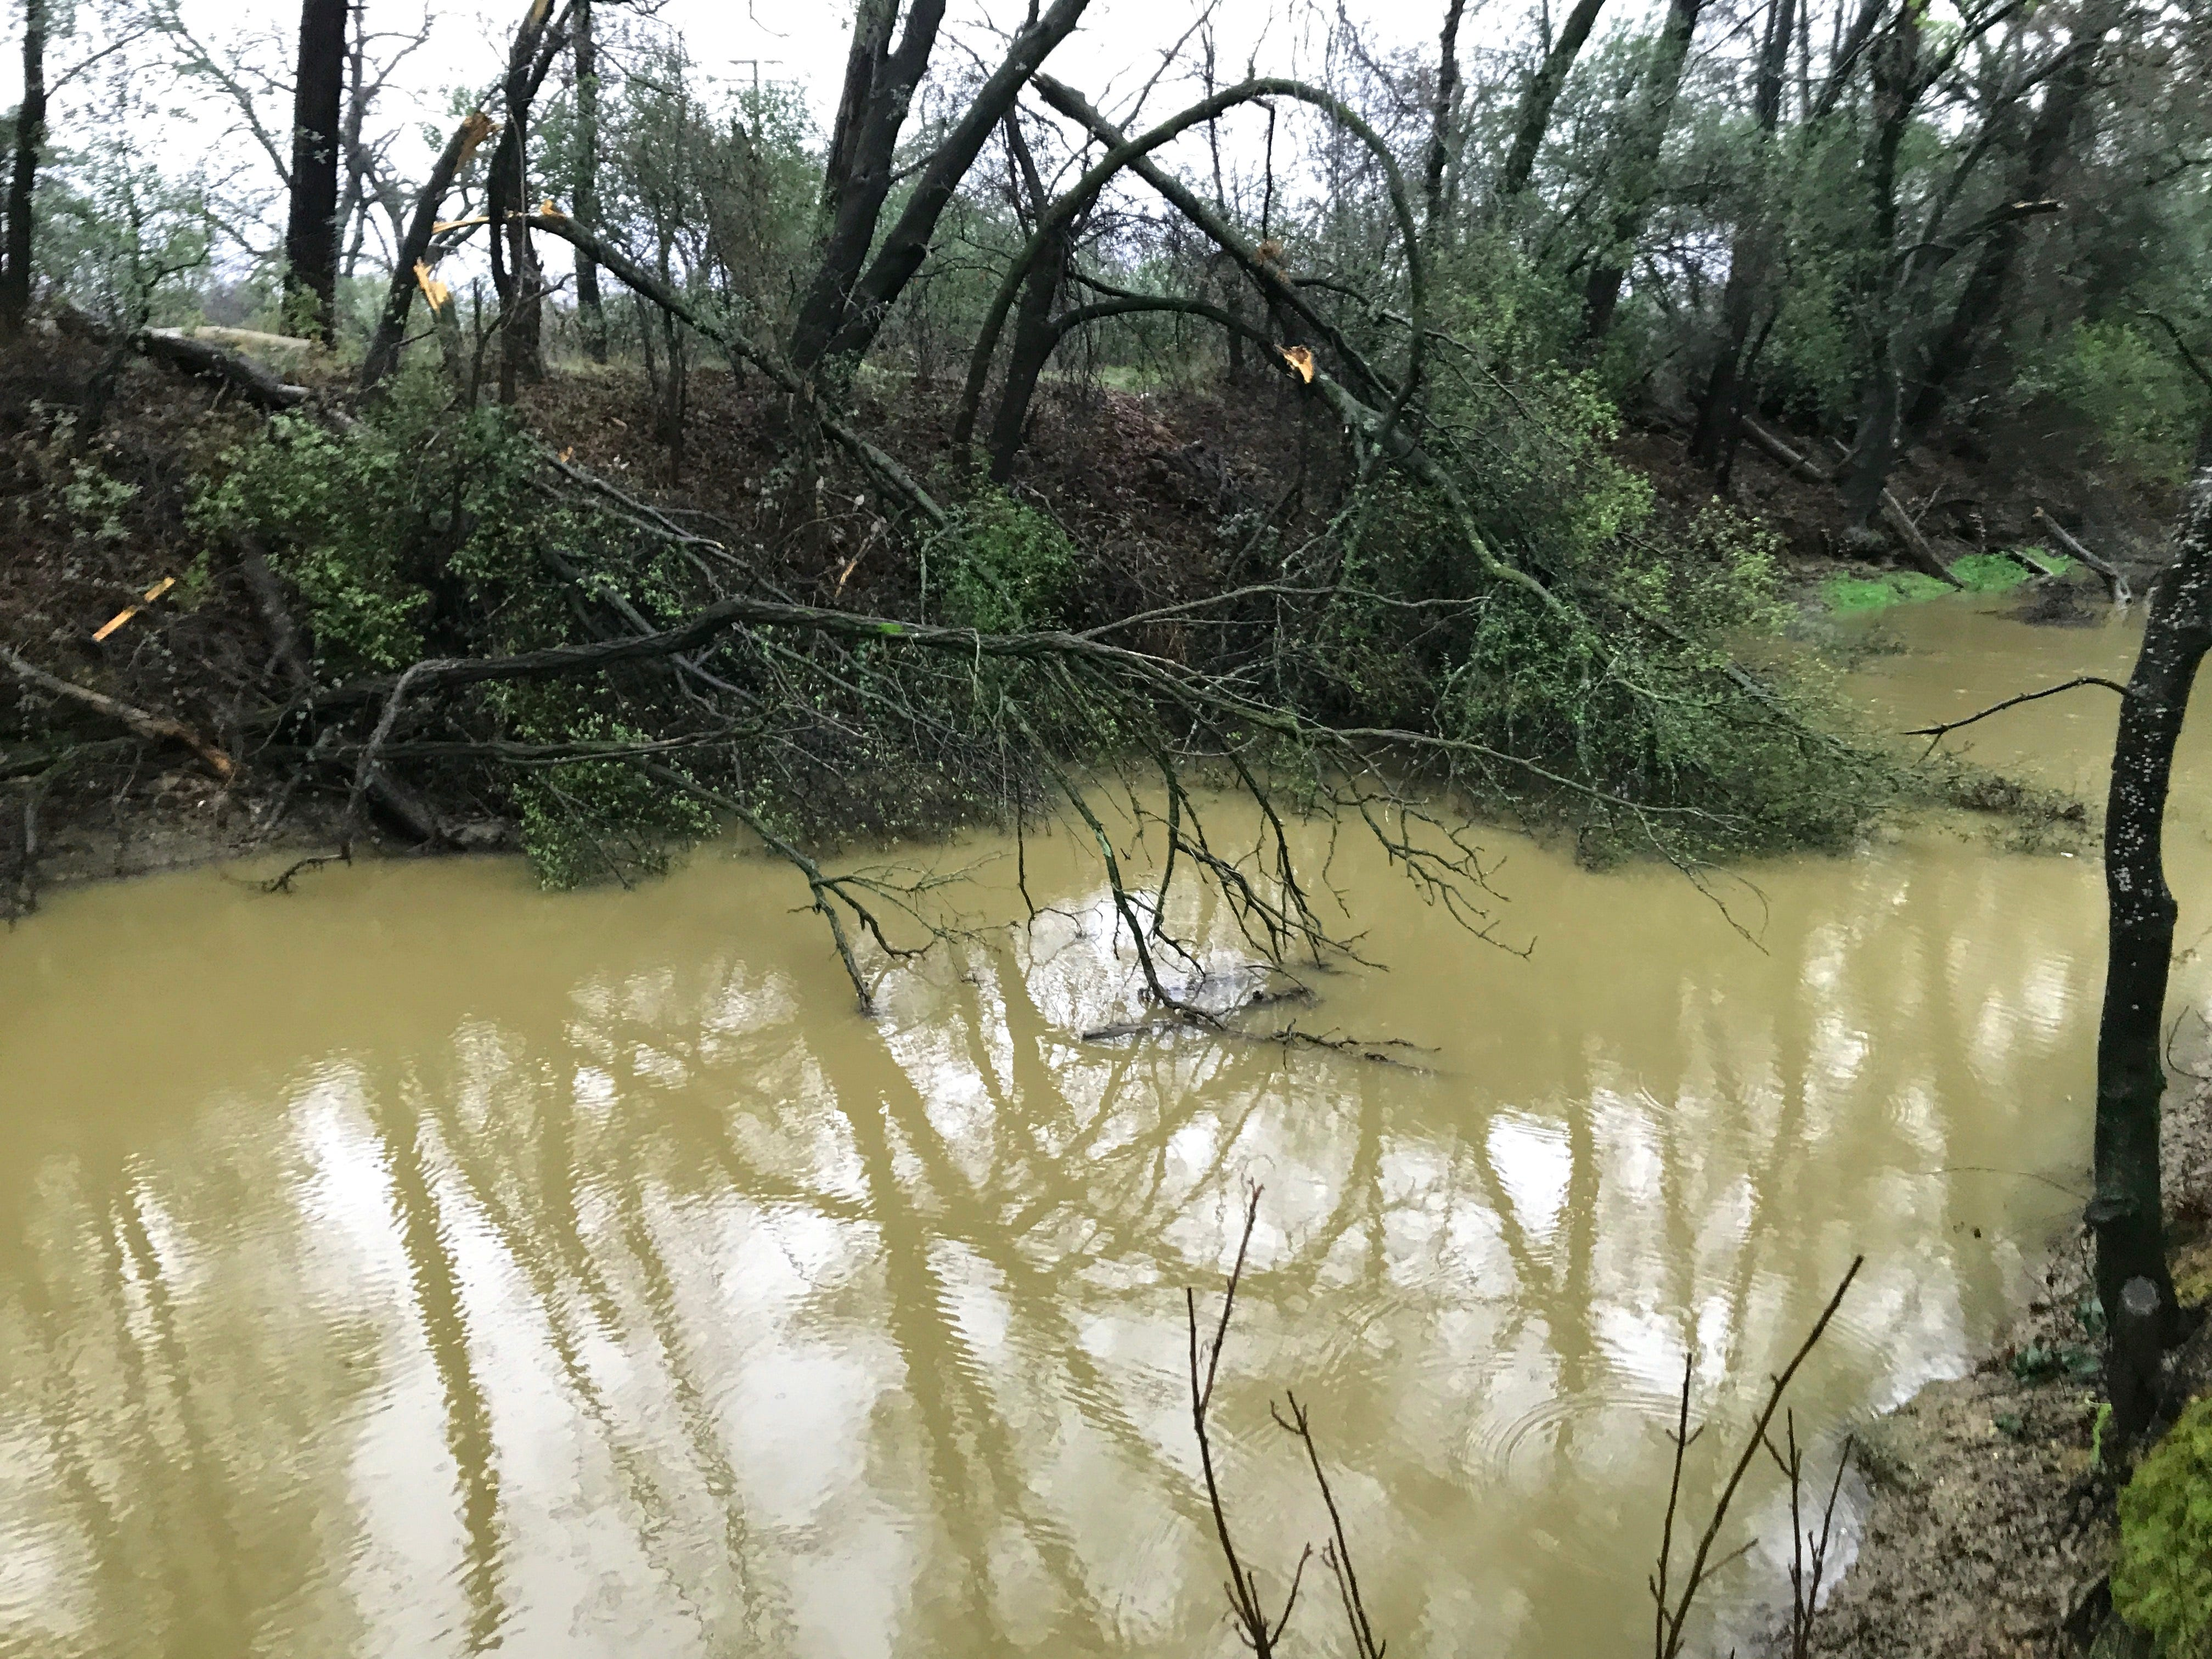 The water was running high in the Anderson-Cottonwood Irrigation Canal near Acorn Lane in south Redding during a rainstorm Feb. 27, 2019.